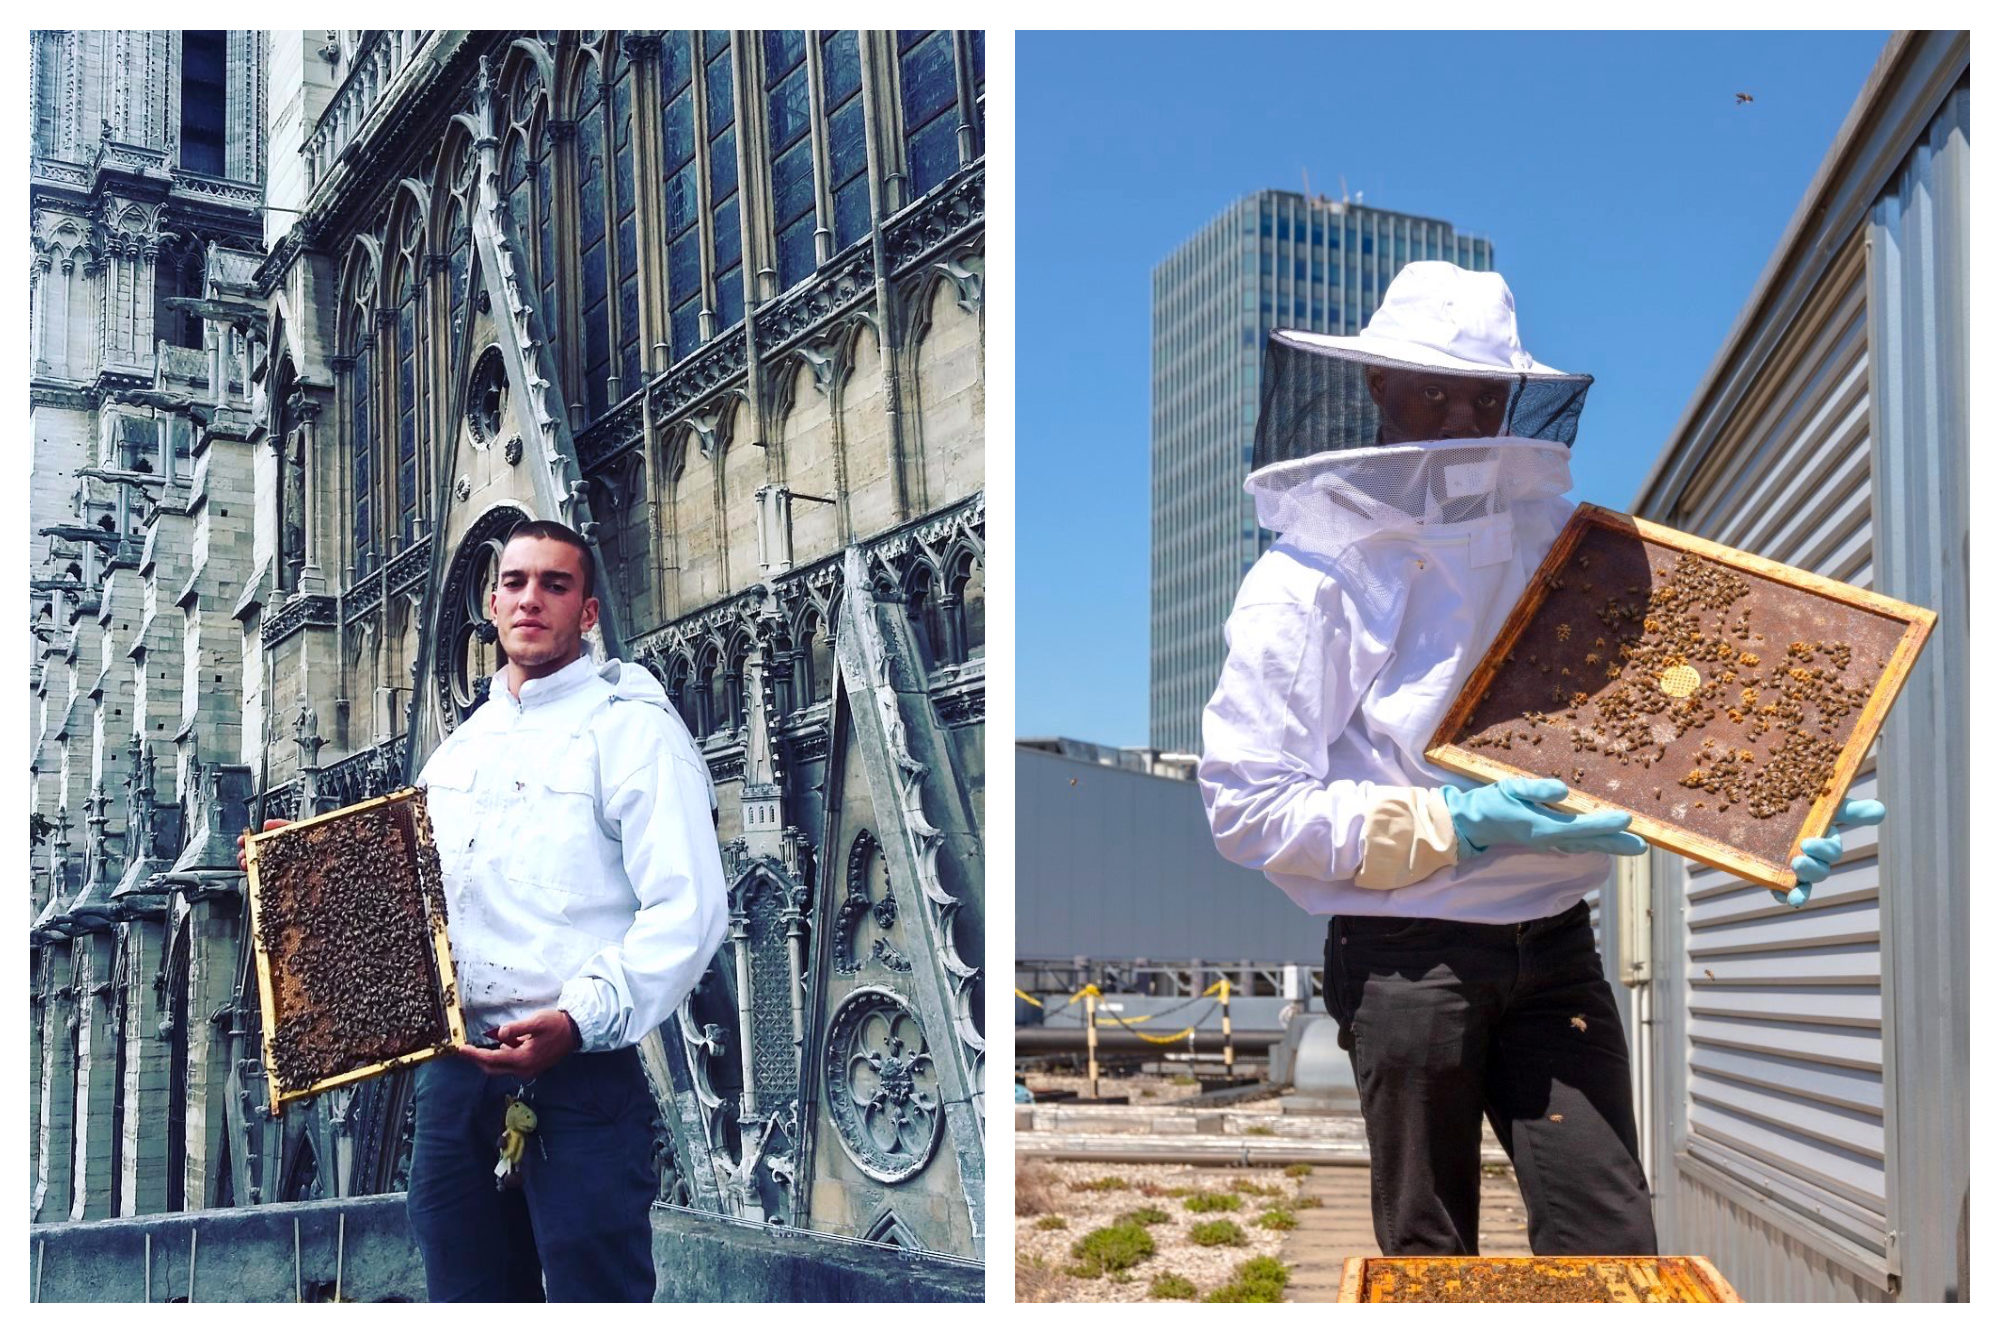 Beekeeper holding up a panel from his beehive (left and right).